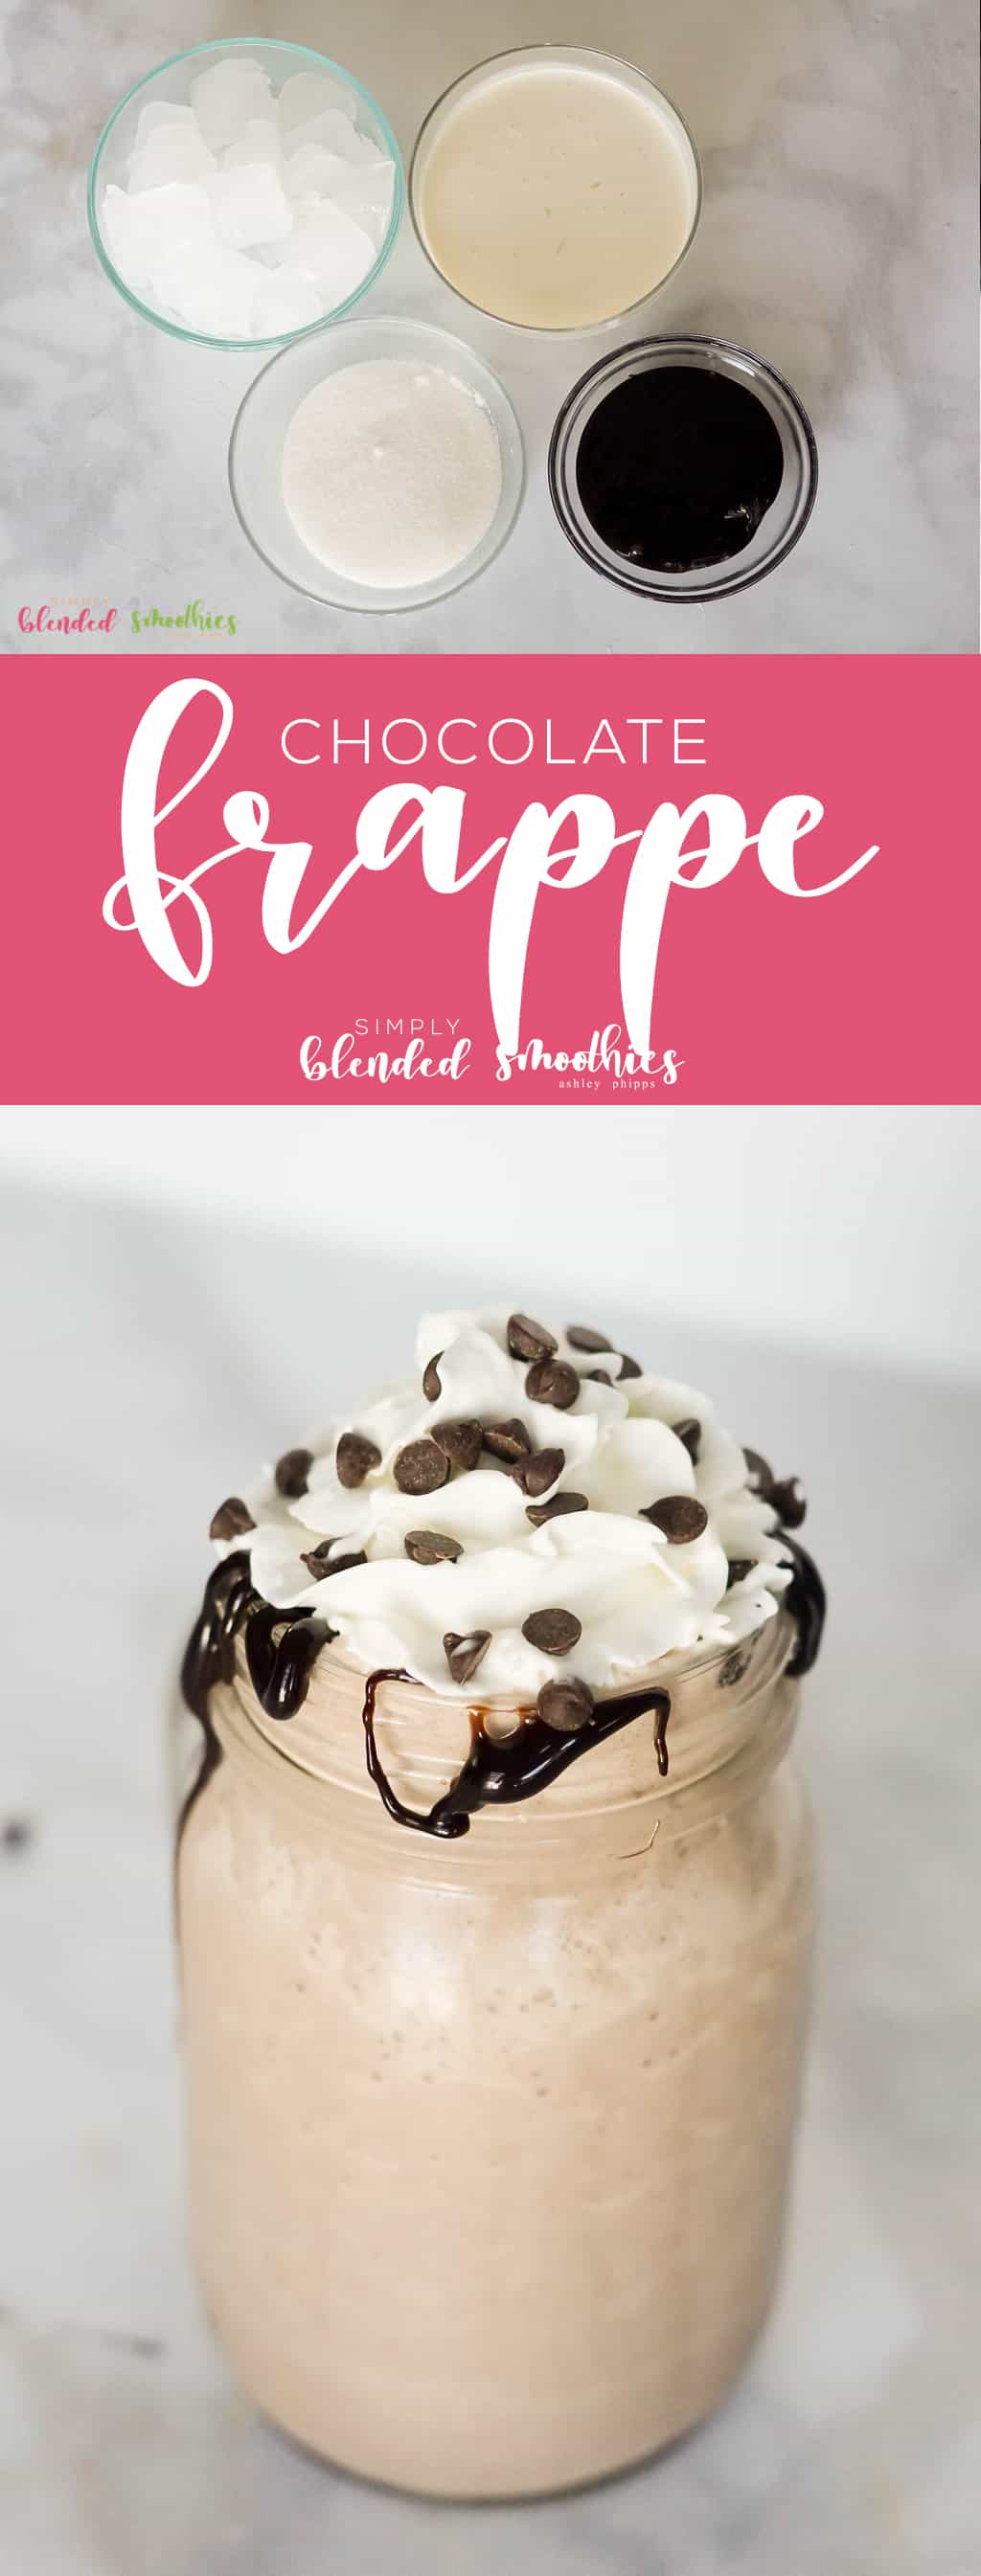 This Chocolate Frappe recipe is just as delicious as one you could buy at an expensive coffee shop but free from yuck ingredients and so much cheaper